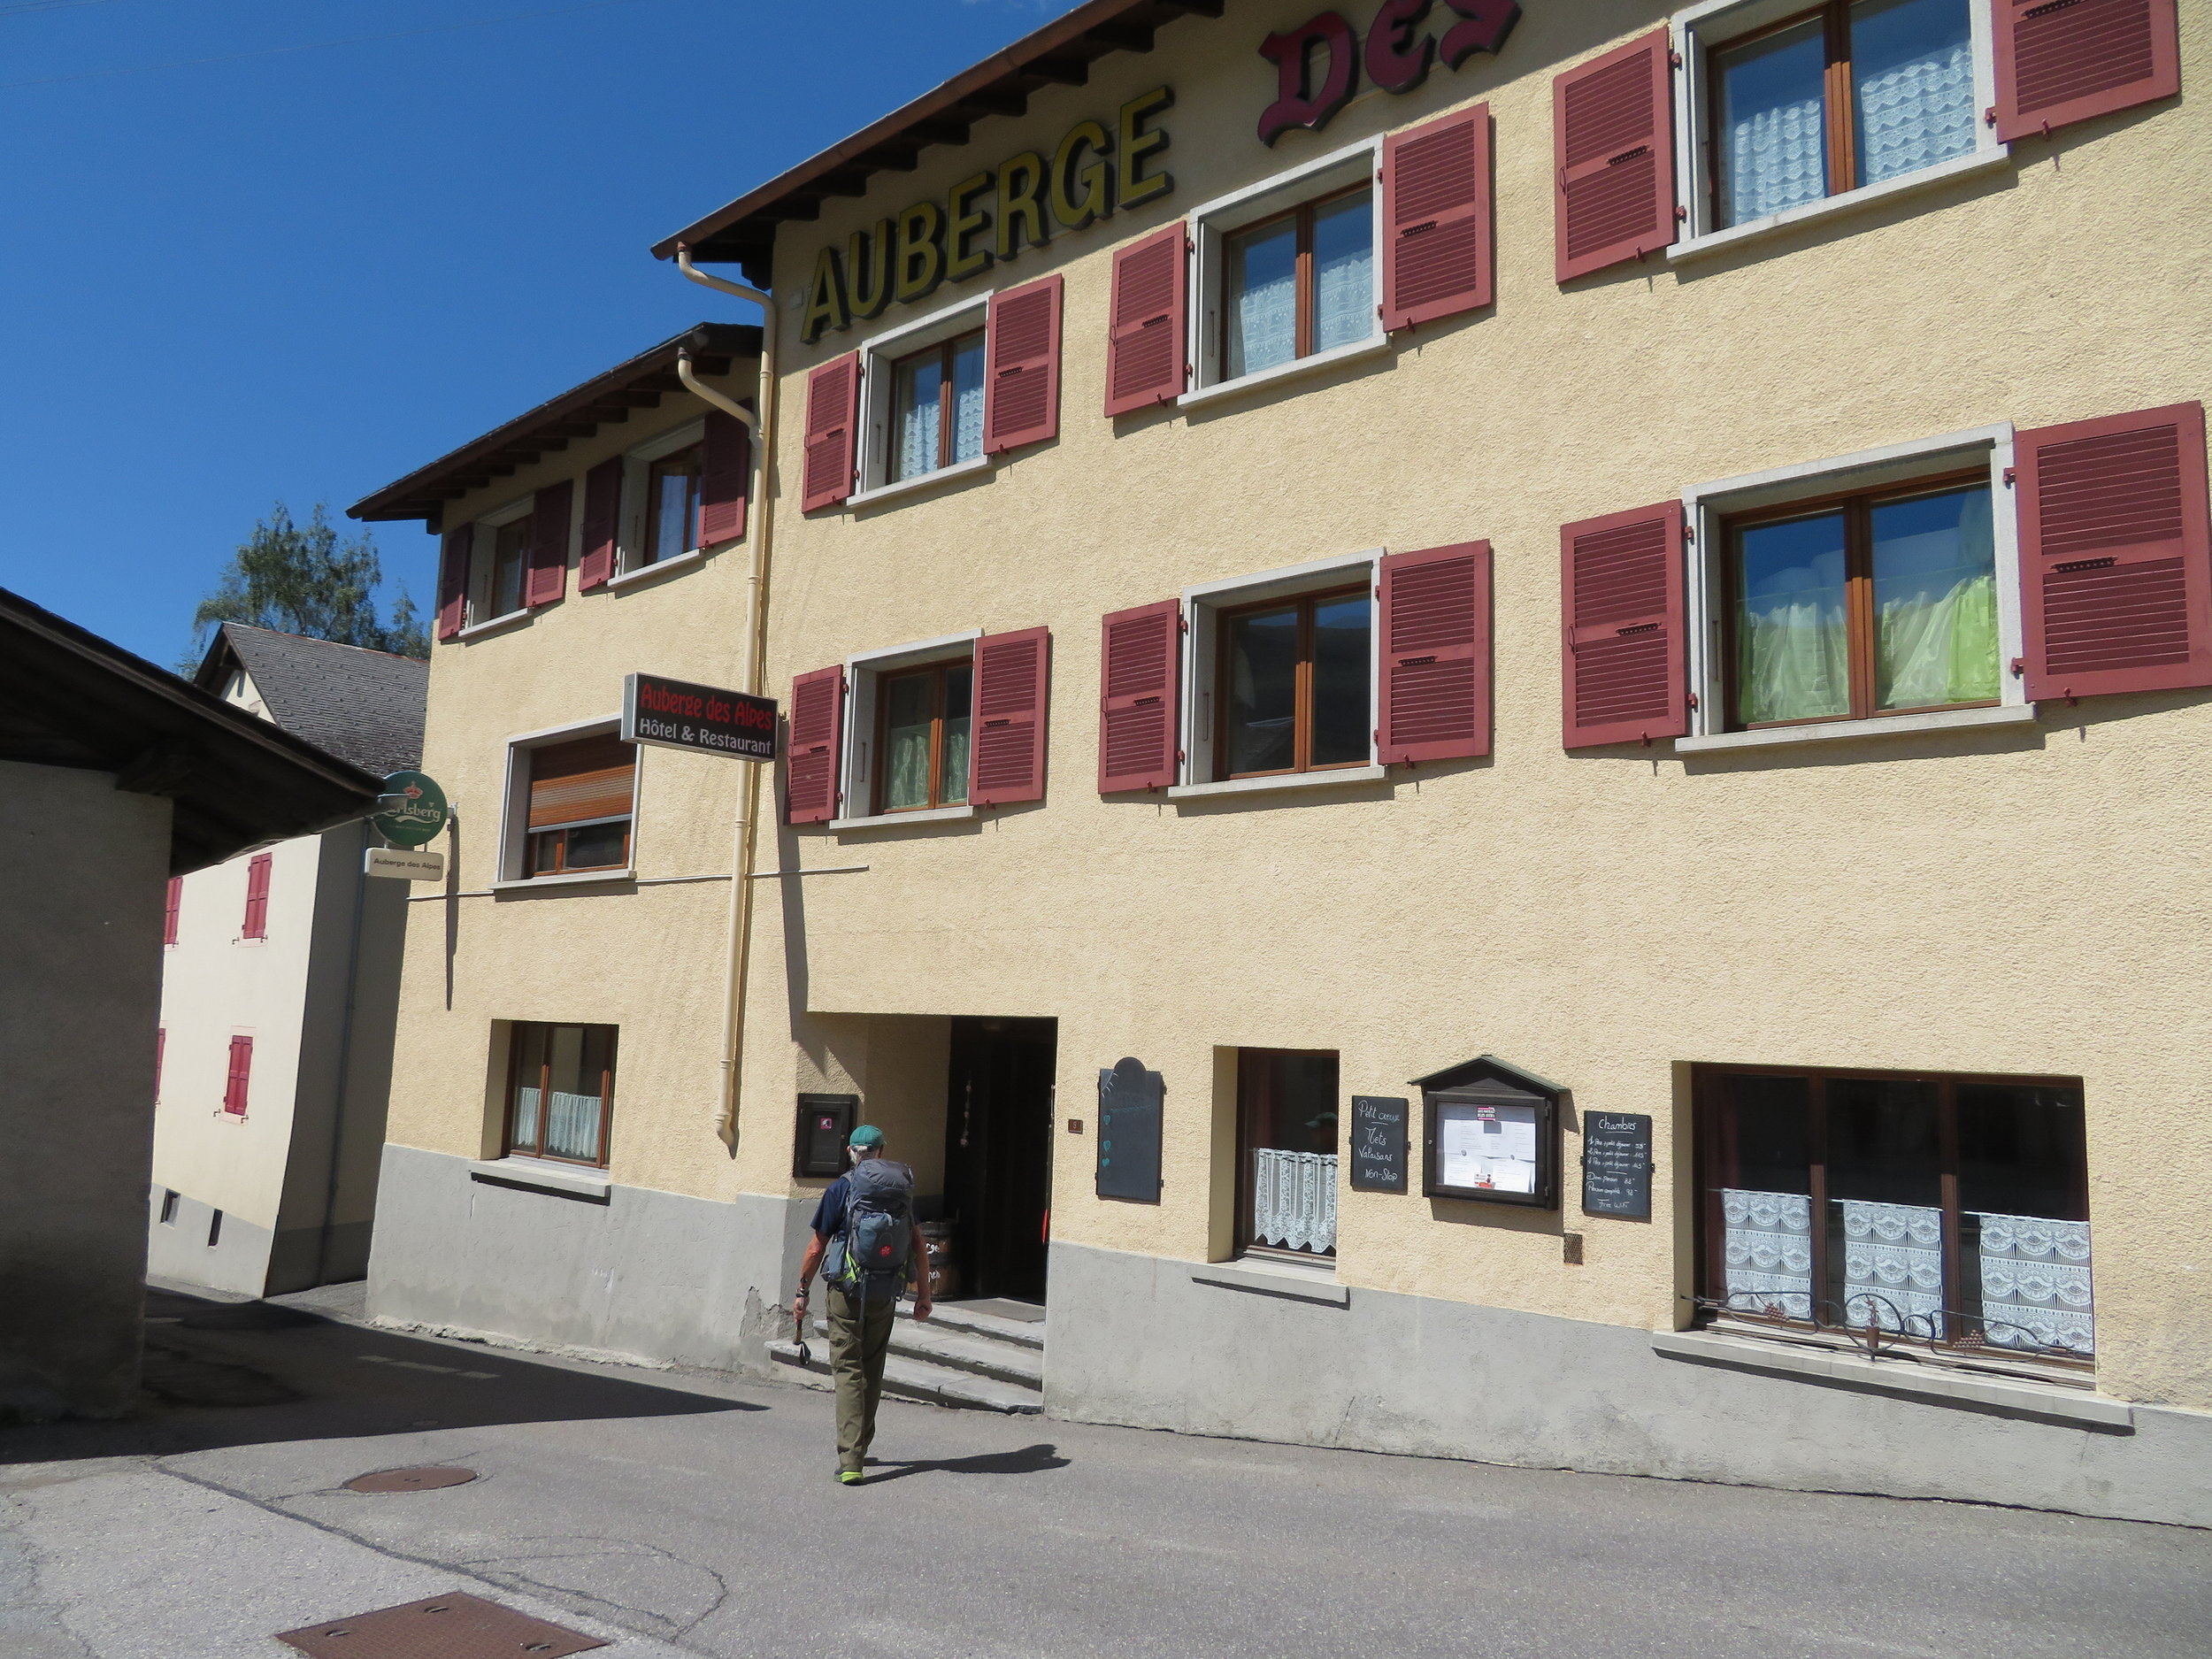 Auberge des Alpes … basic and expensive! We're in Switzerland.